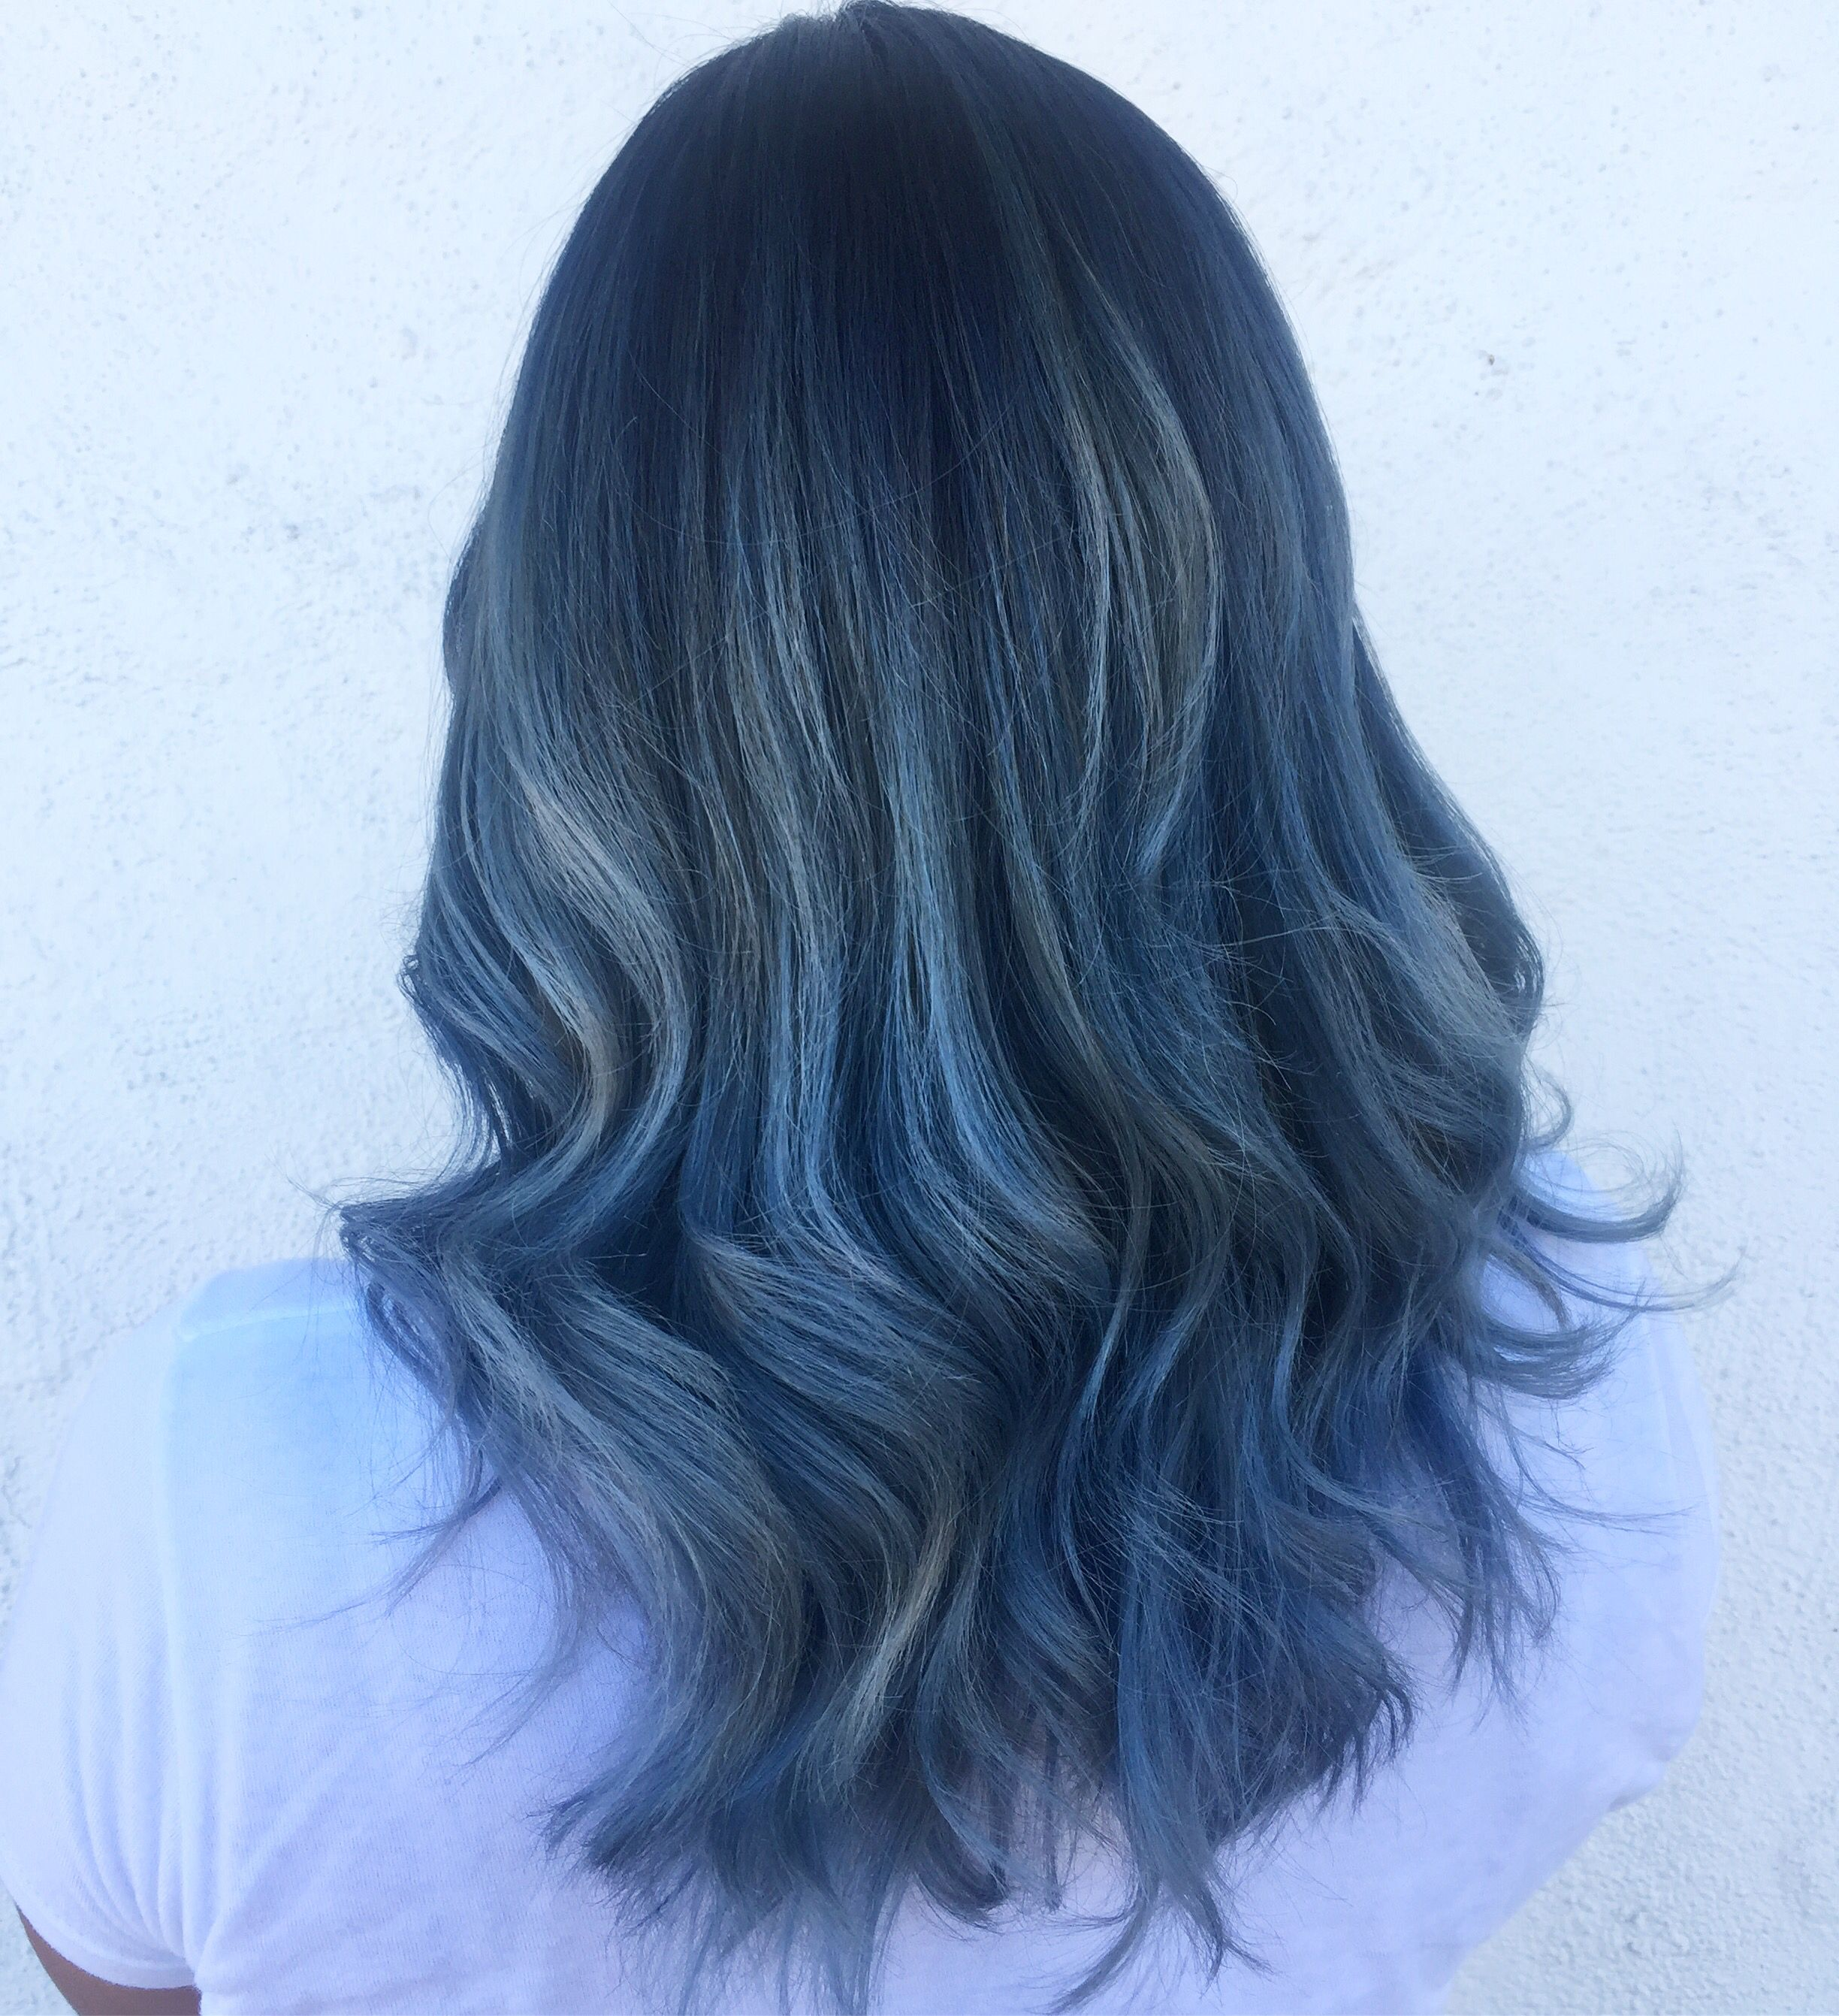 Blue Gray Hair Toned With Schwarzkopf With Images Blue Grey